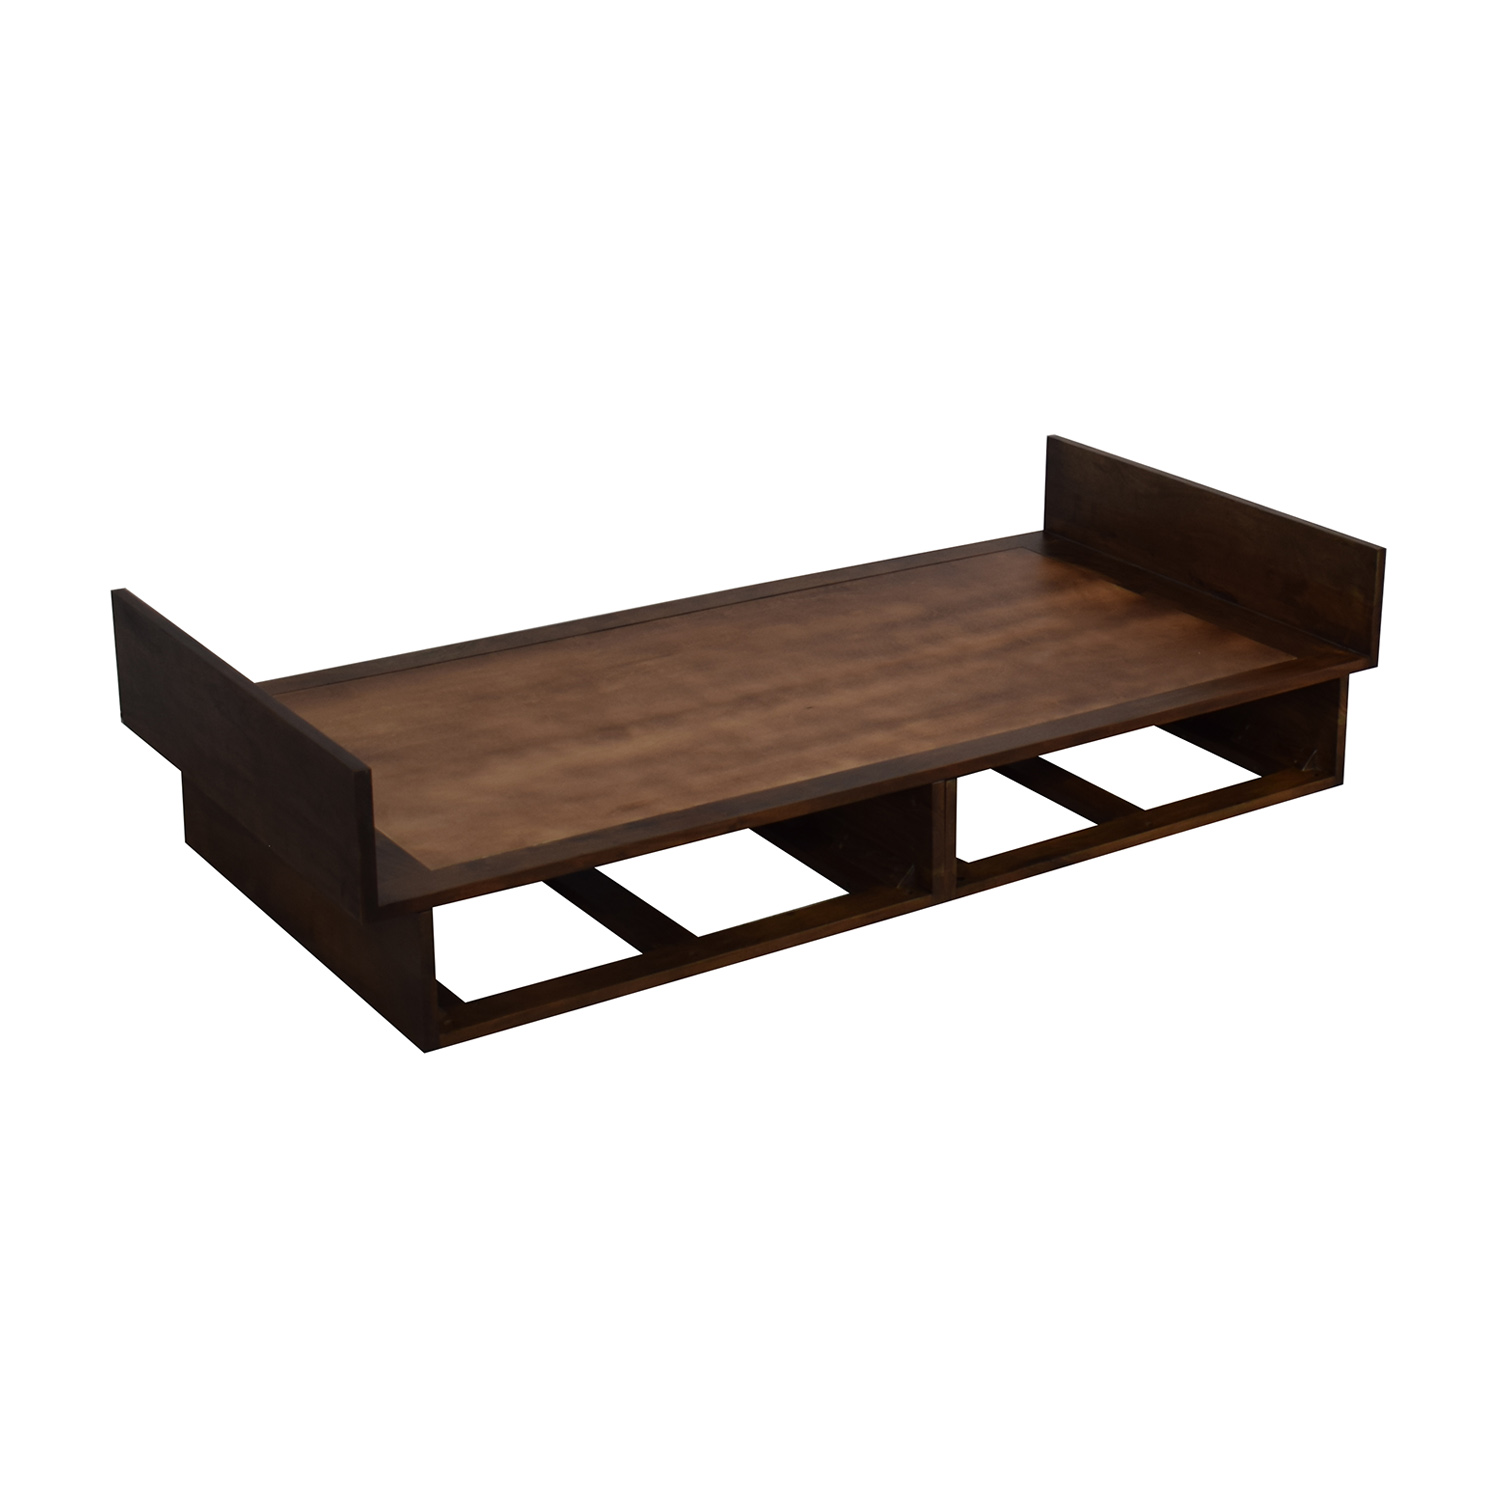 CB2 CB2 Fred Segal Daybed Frame Beds